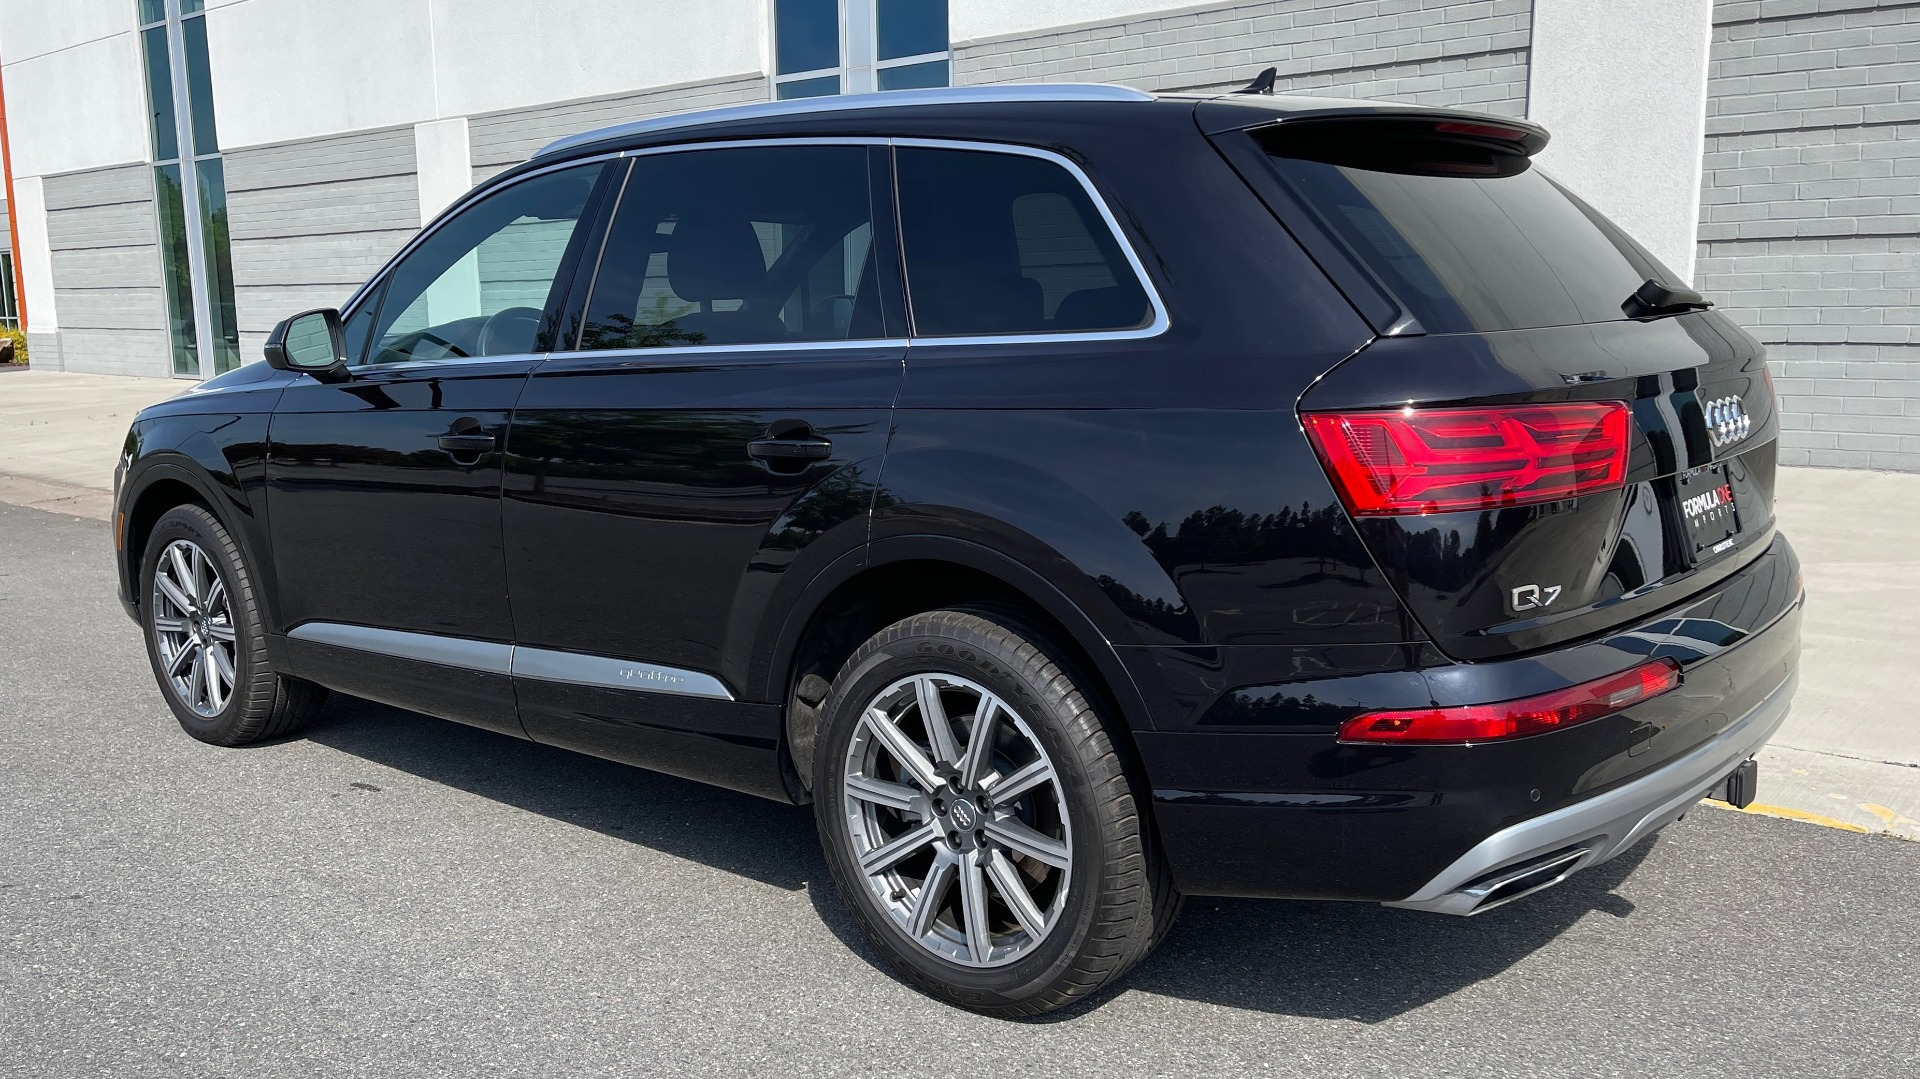 Used 2018 Audi Q7 PREMIUM PLUS / NAV / PANO-ROOF / BOSE / 3-ROW / REARVIEW for sale $43,461 at Formula Imports in Charlotte NC 28227 6